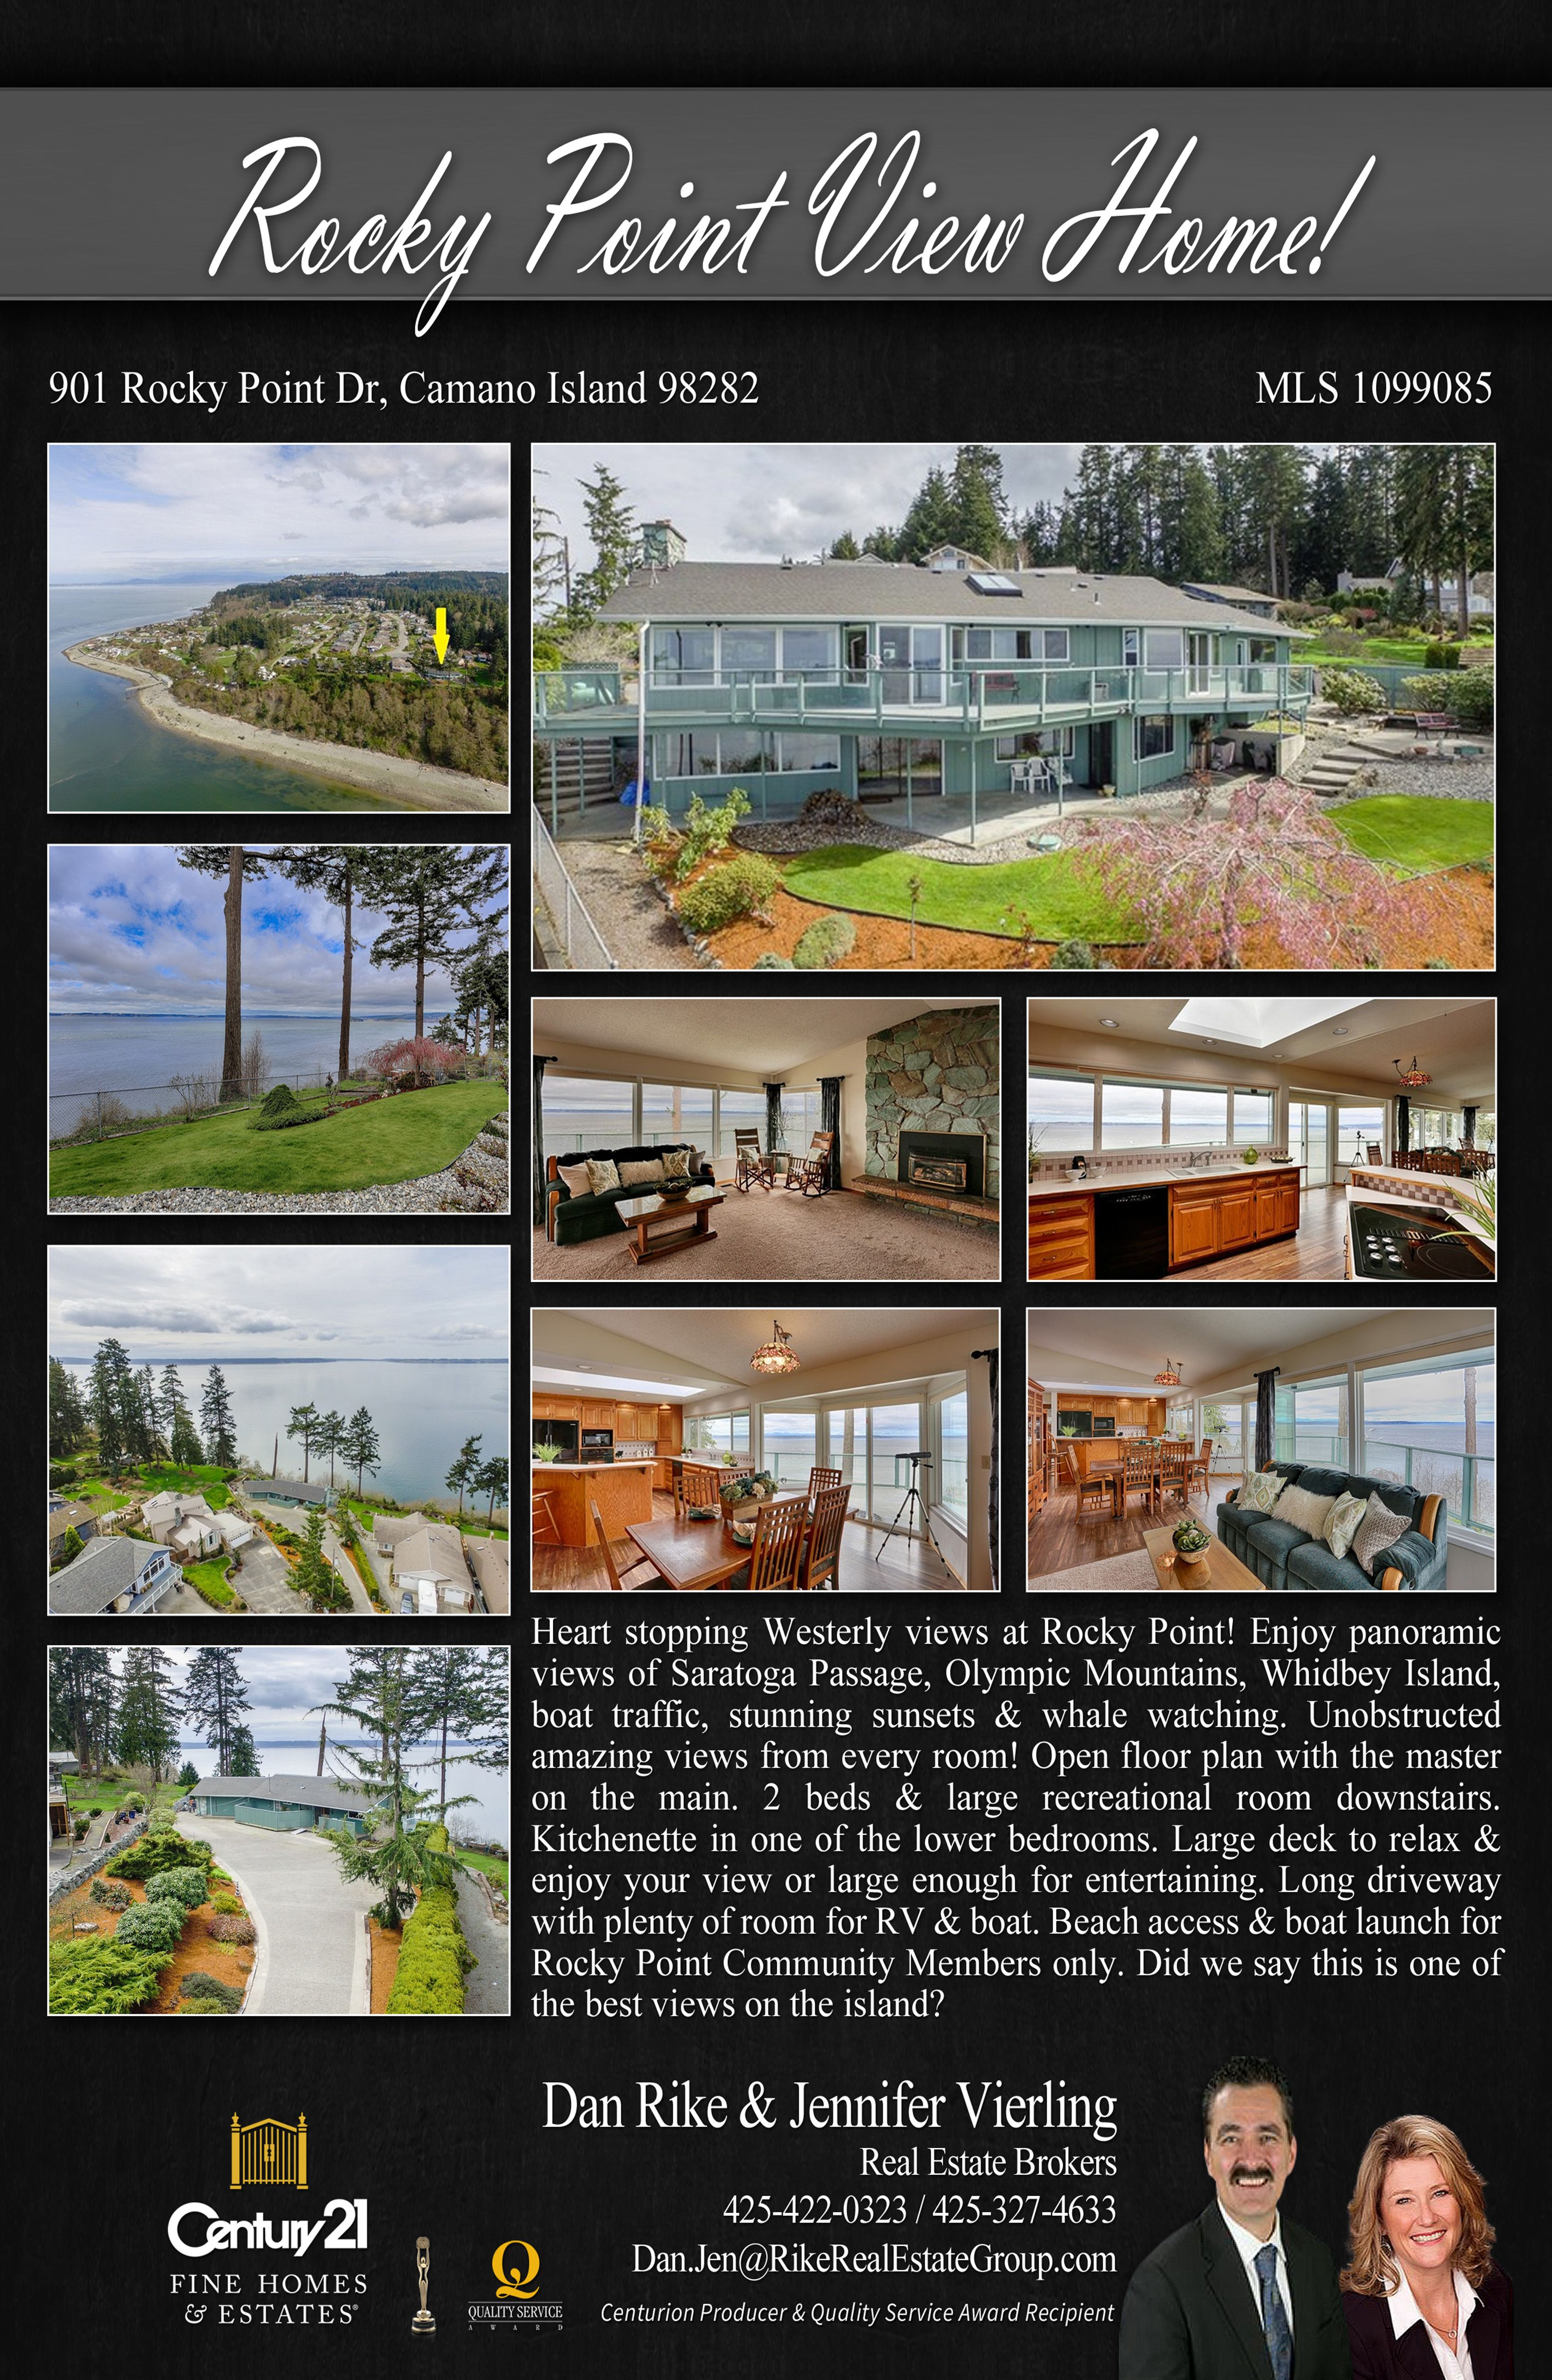 This Property Has Heart Stopping Westerly Views At Rocky Point Contact Dan Rike And Jennifer Vierling Today For Inquiries Camano Island Island Rocky Point